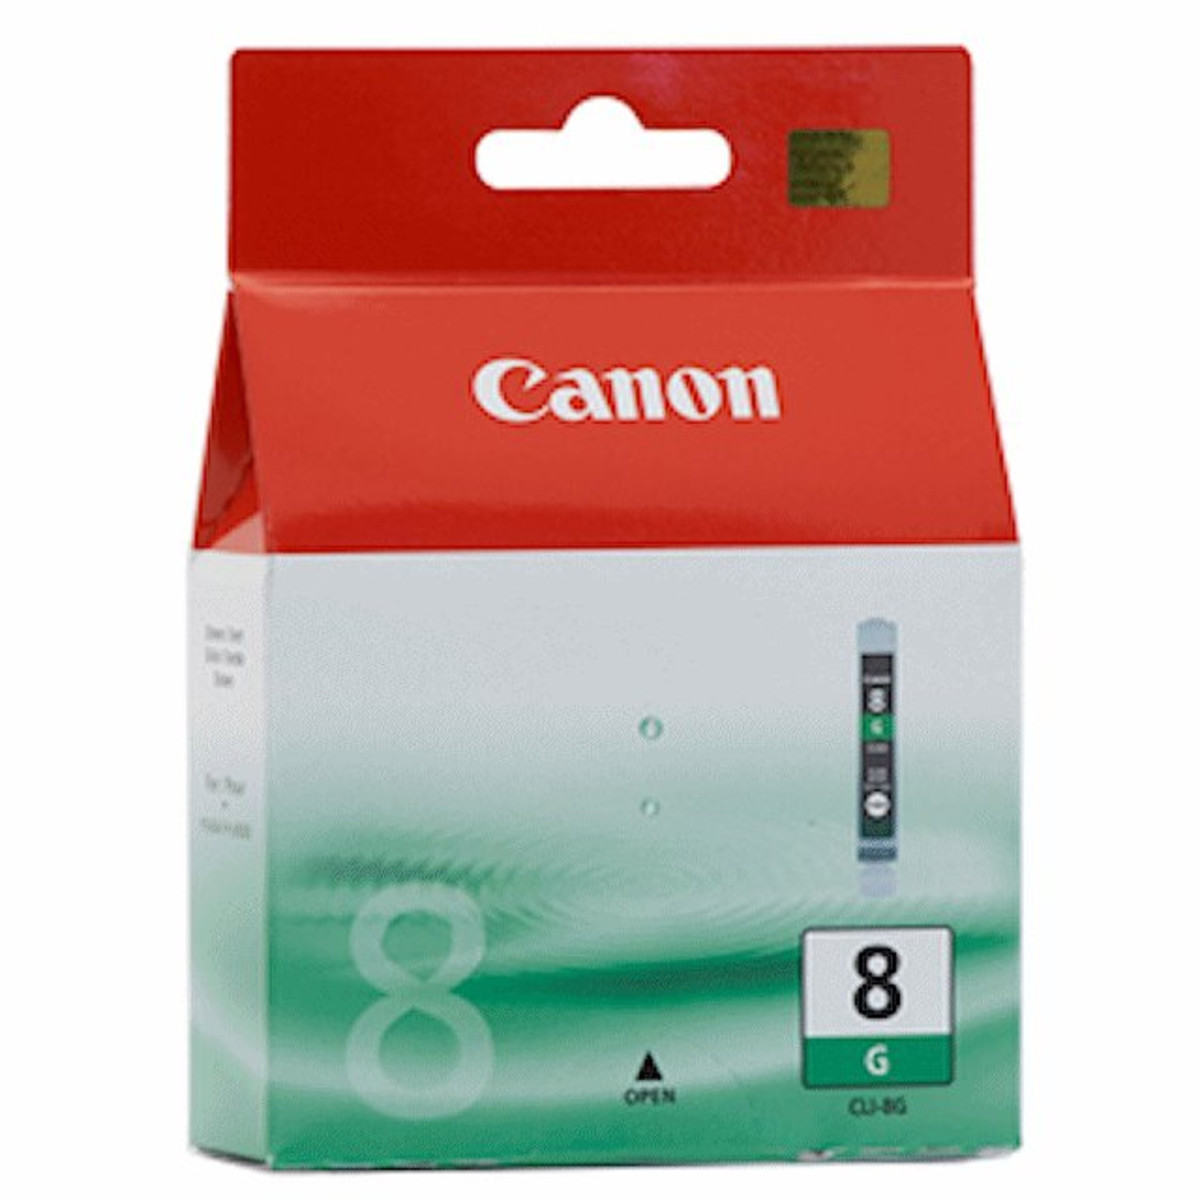 Canon CLI-8G Green Ink Tank